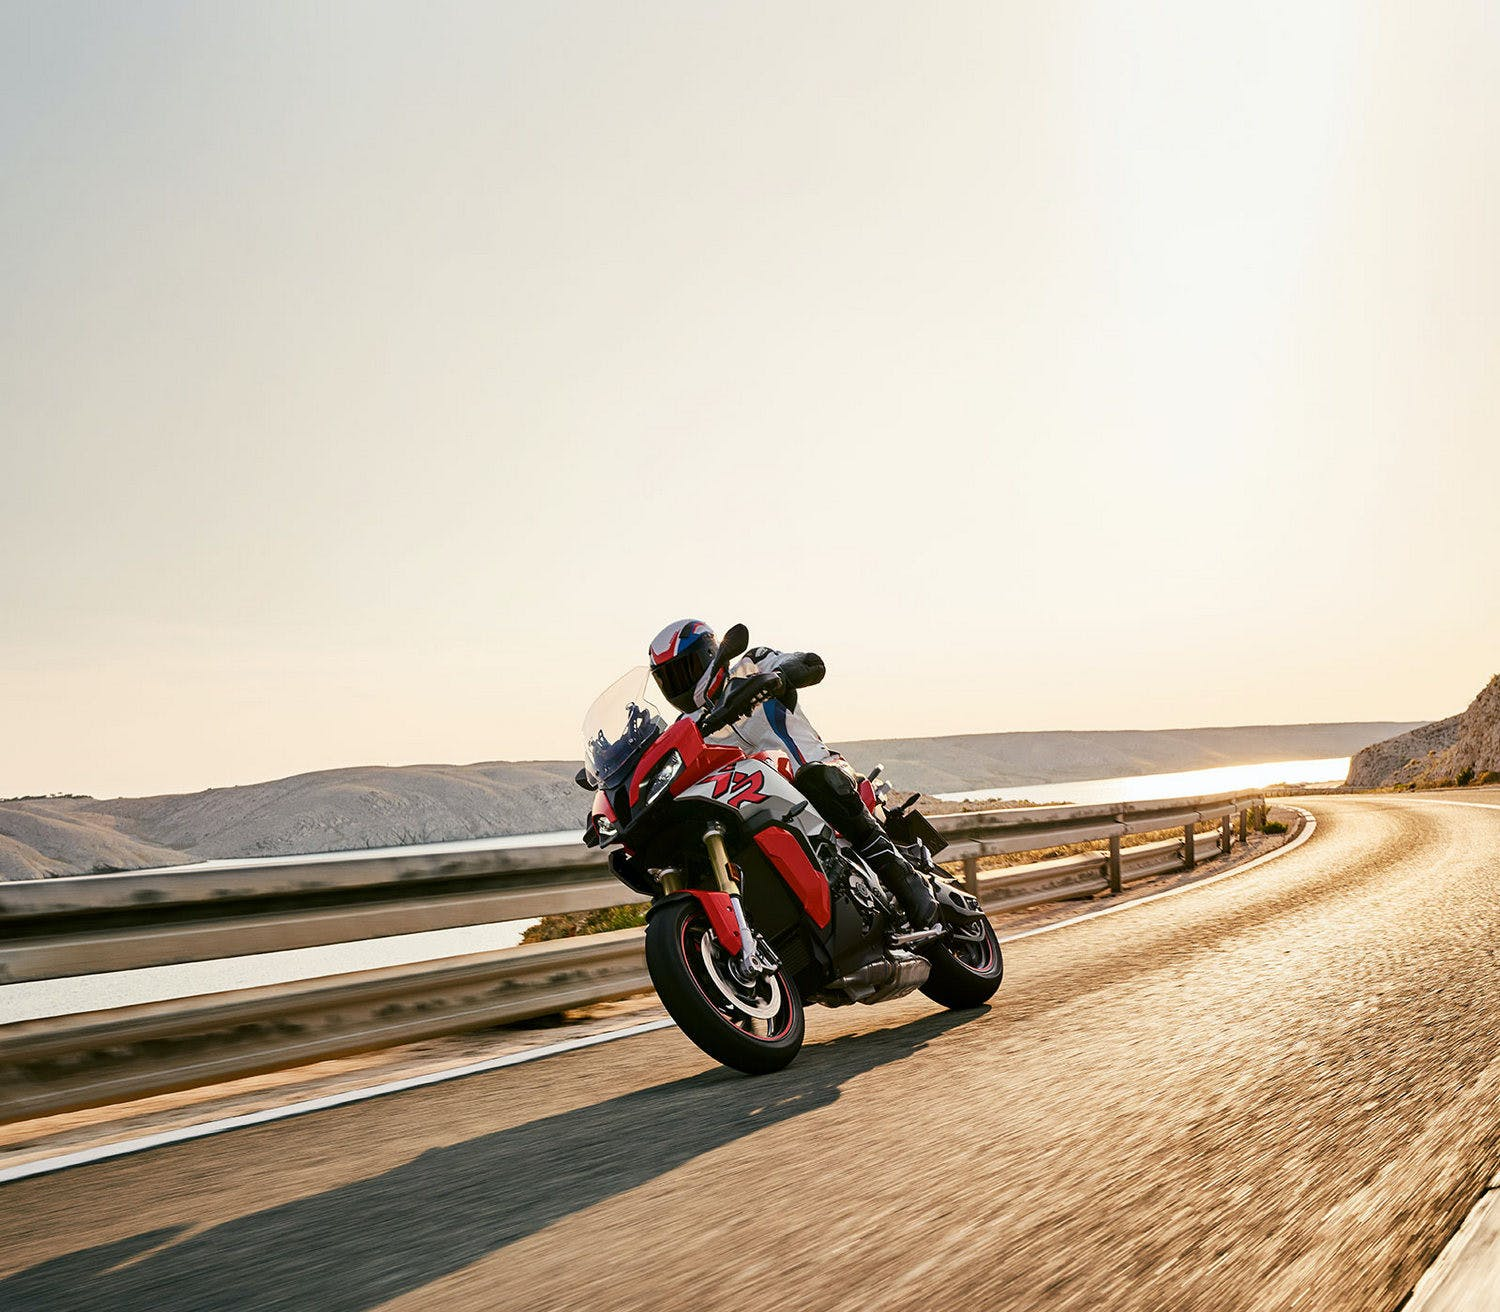 BMW S 1000 XR being ridden on the hill road